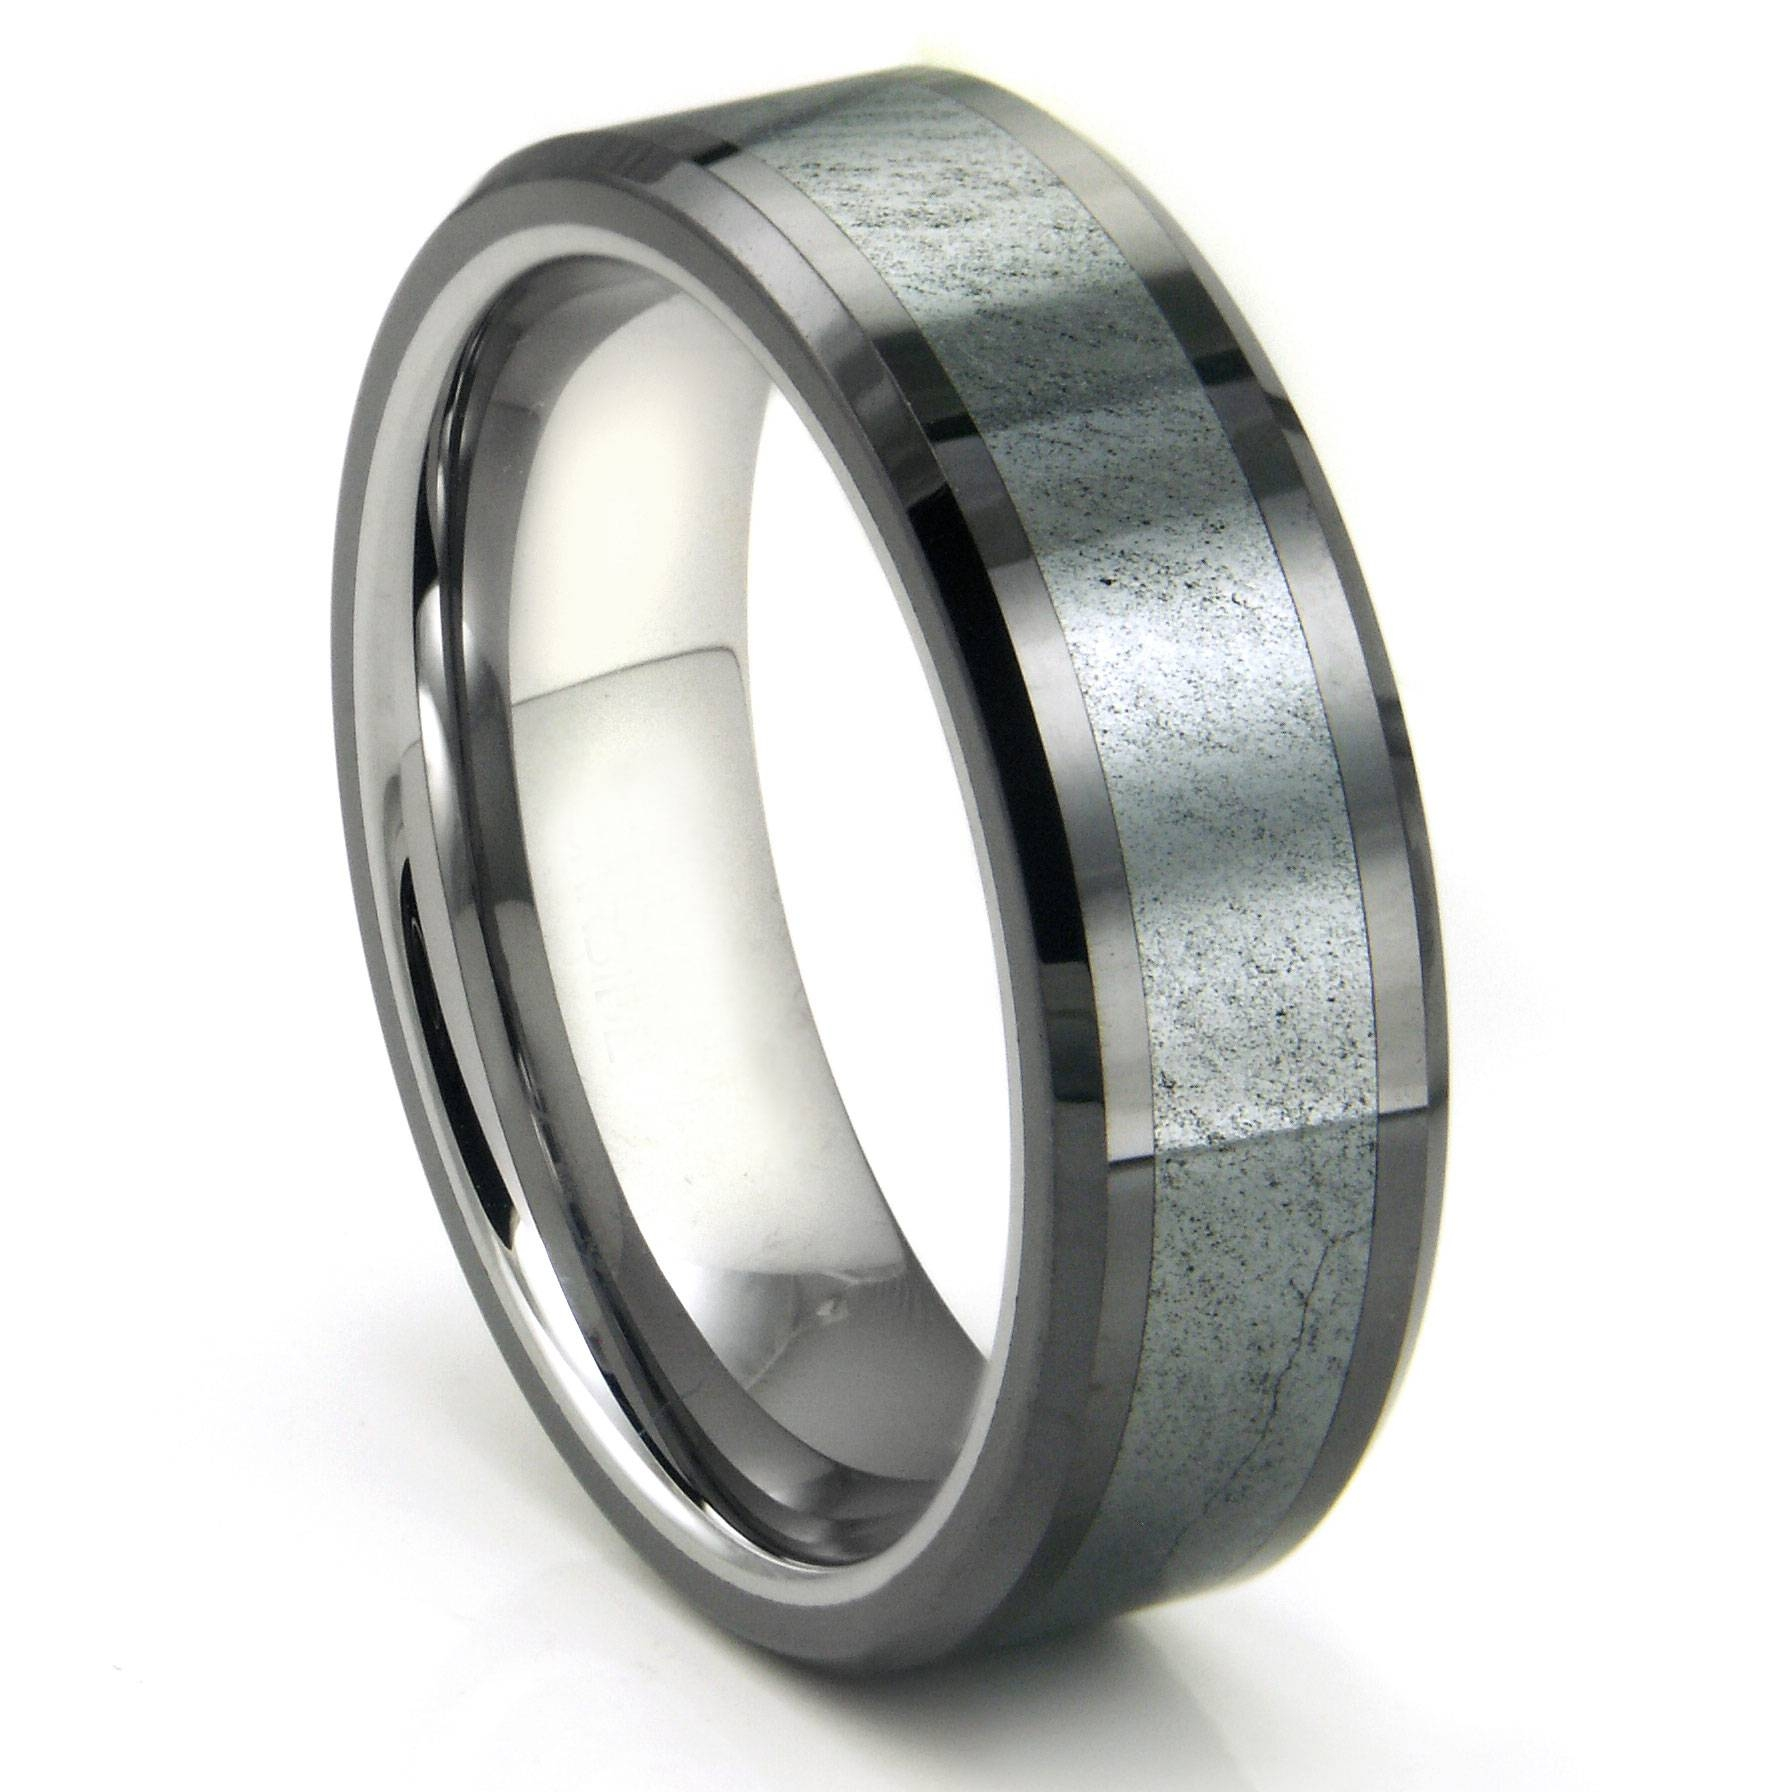 Wedding Rings : Tungsten Wedding Ring For Her Tungsten Wedding Throughout Tungsten Wedding Rings For Her (View 12 of 15)